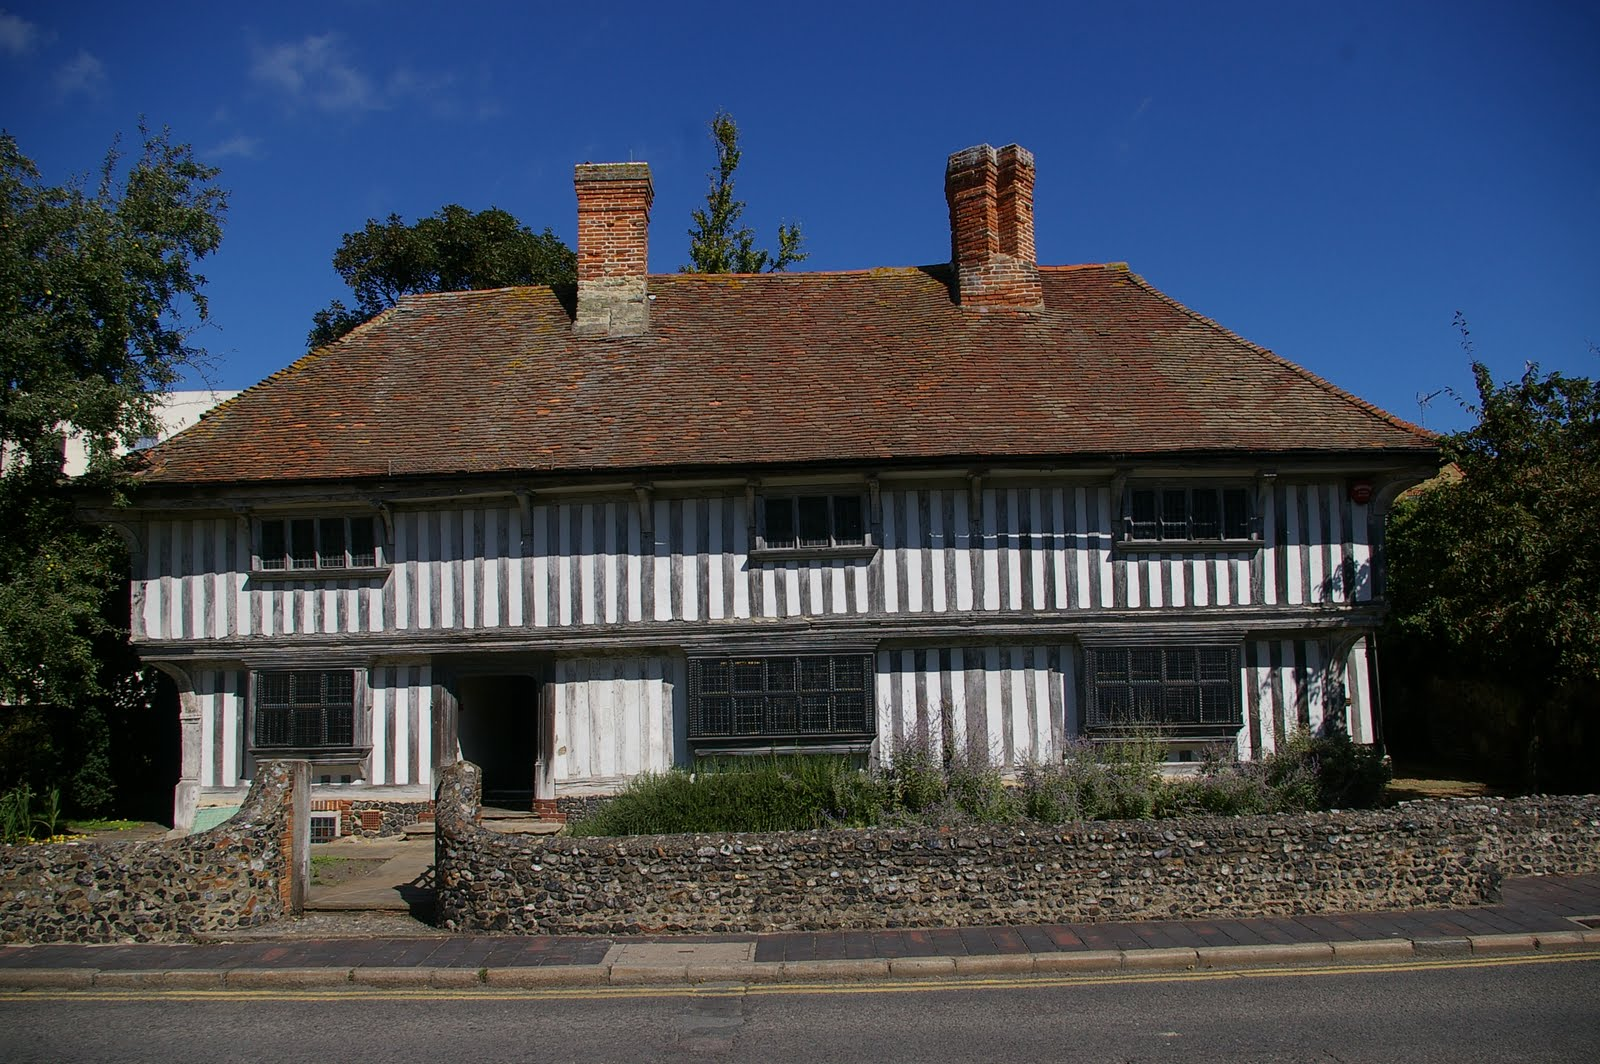 Thanetonline photos of the tudor house in margate - What makes a house a tudor ...